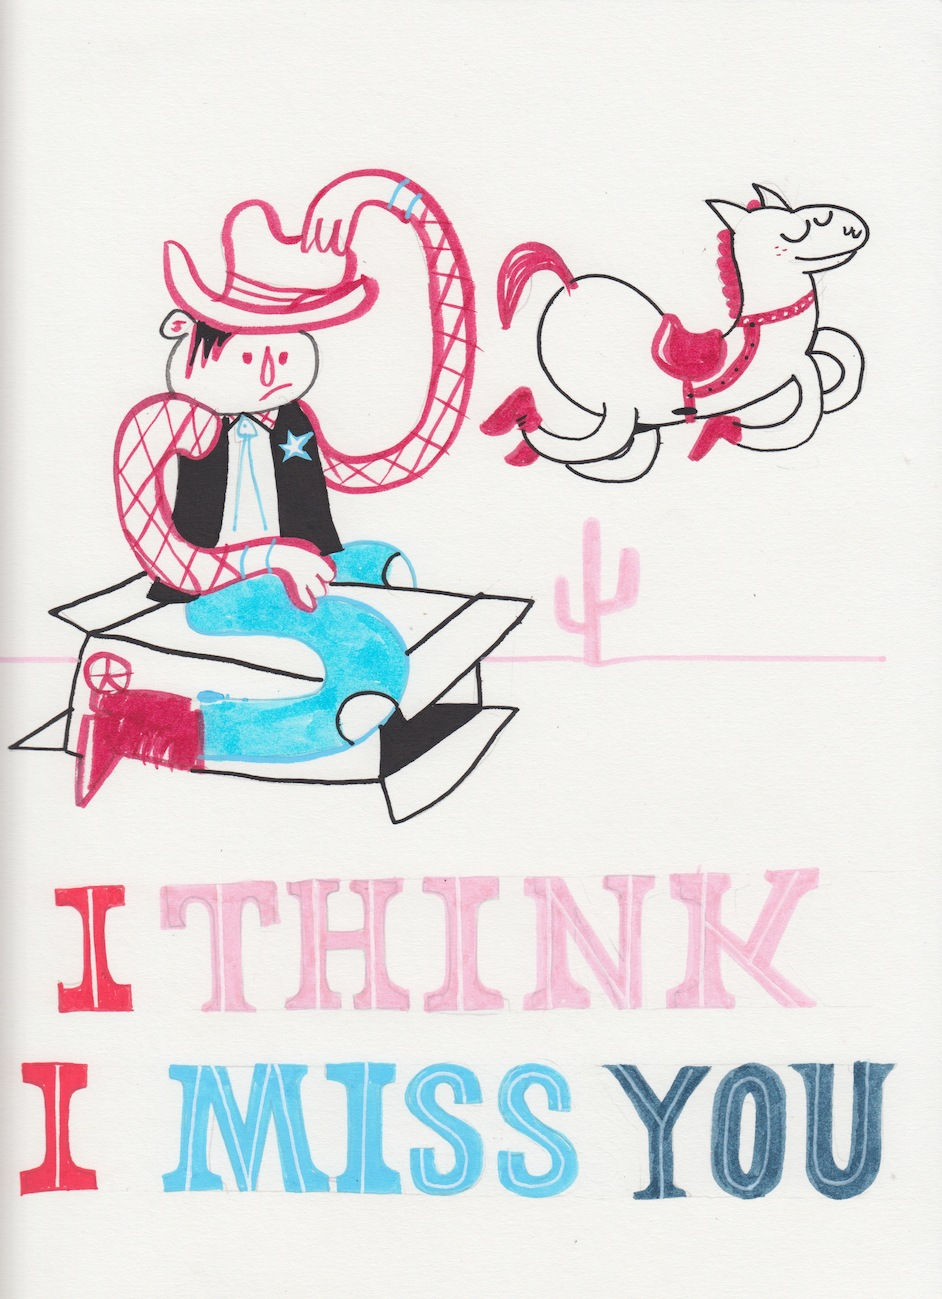 I think I miss you. Cowboy